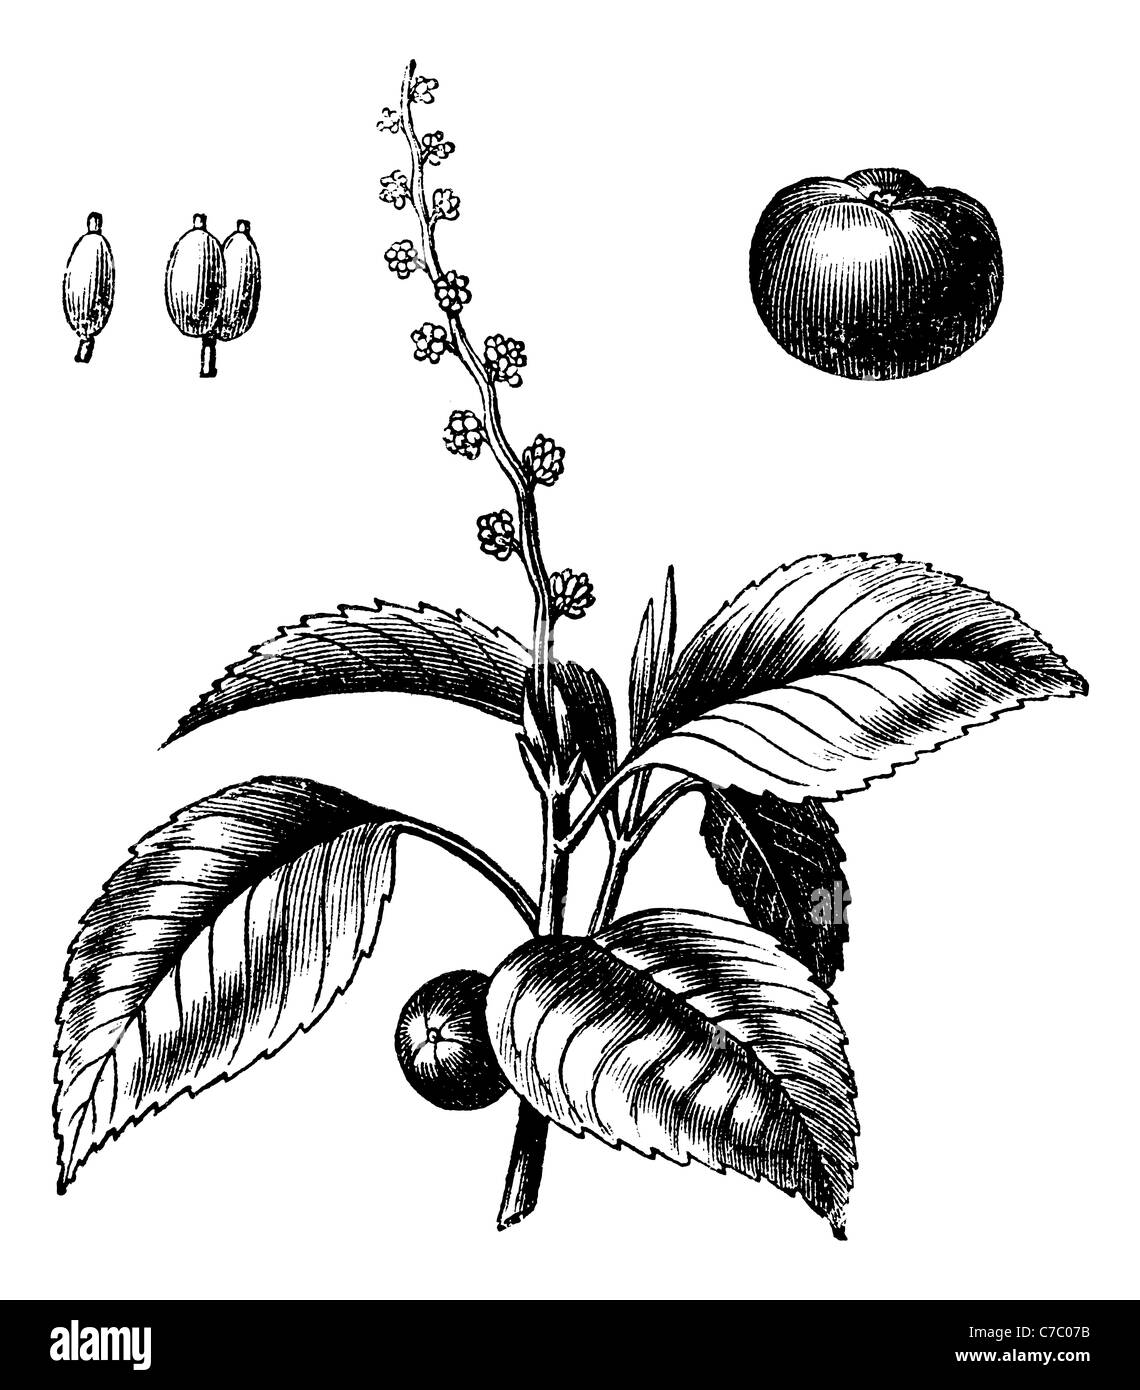 Manchineel tree or Mancinella, vintage engraving. Old engraved illustration of Manchineel tree isolated on a white - Stock Image